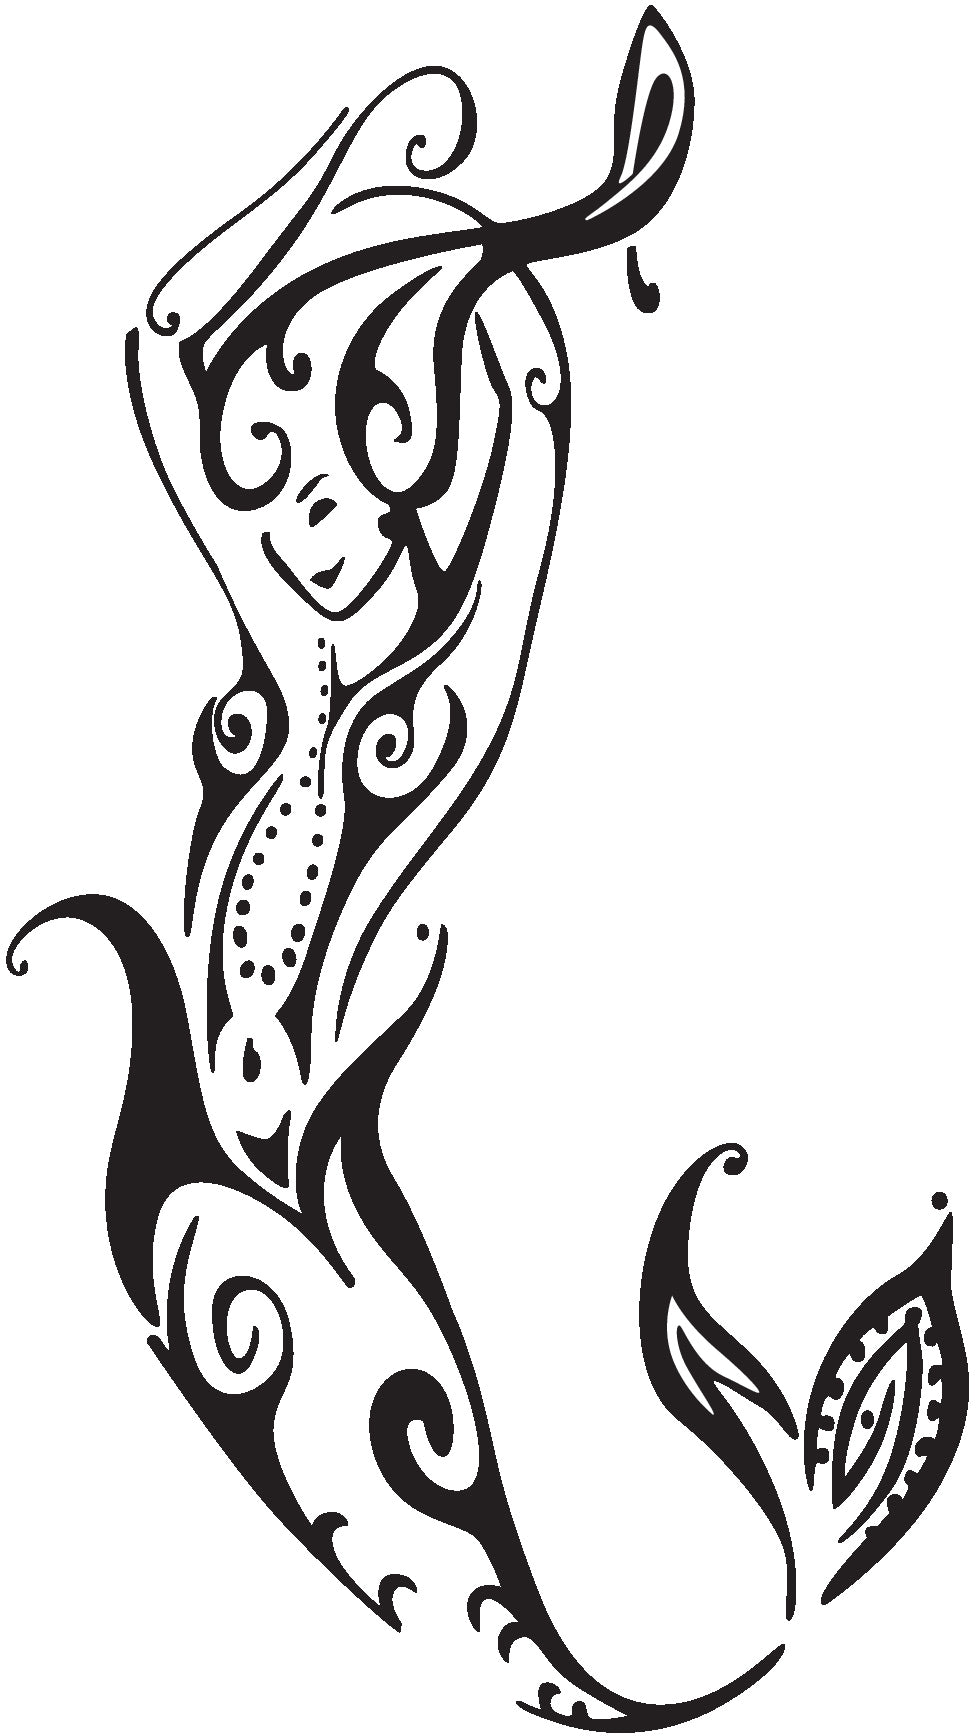 Pretty Sexy Tattoo Style Mermaid Fairy Cartoon Art - Mermaid #4 Vinyl Decal Sticker